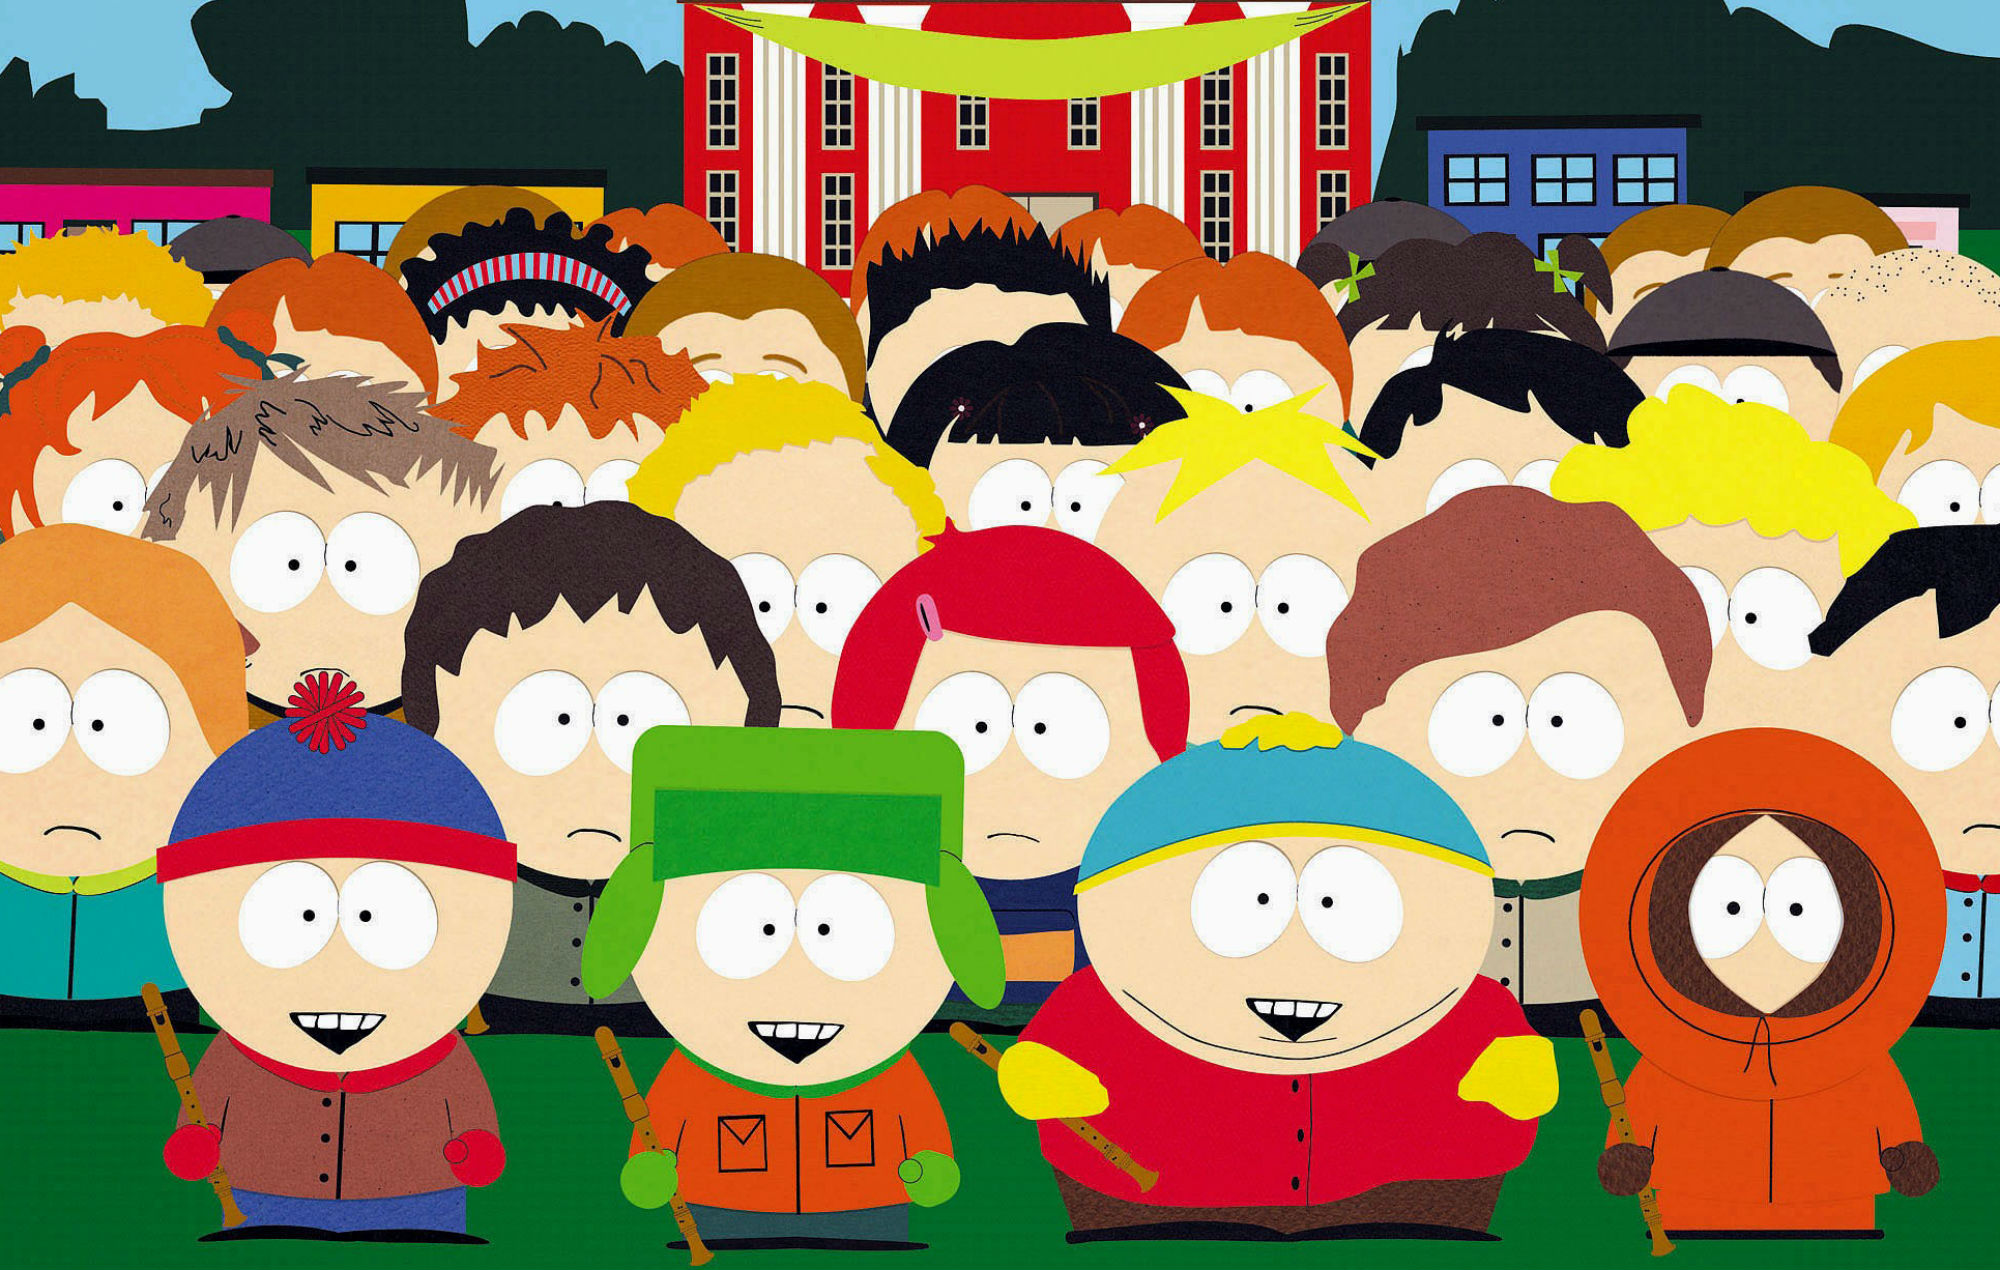 'South Park' to take aim at anti-vaxxer movement in upcoming 300th episode